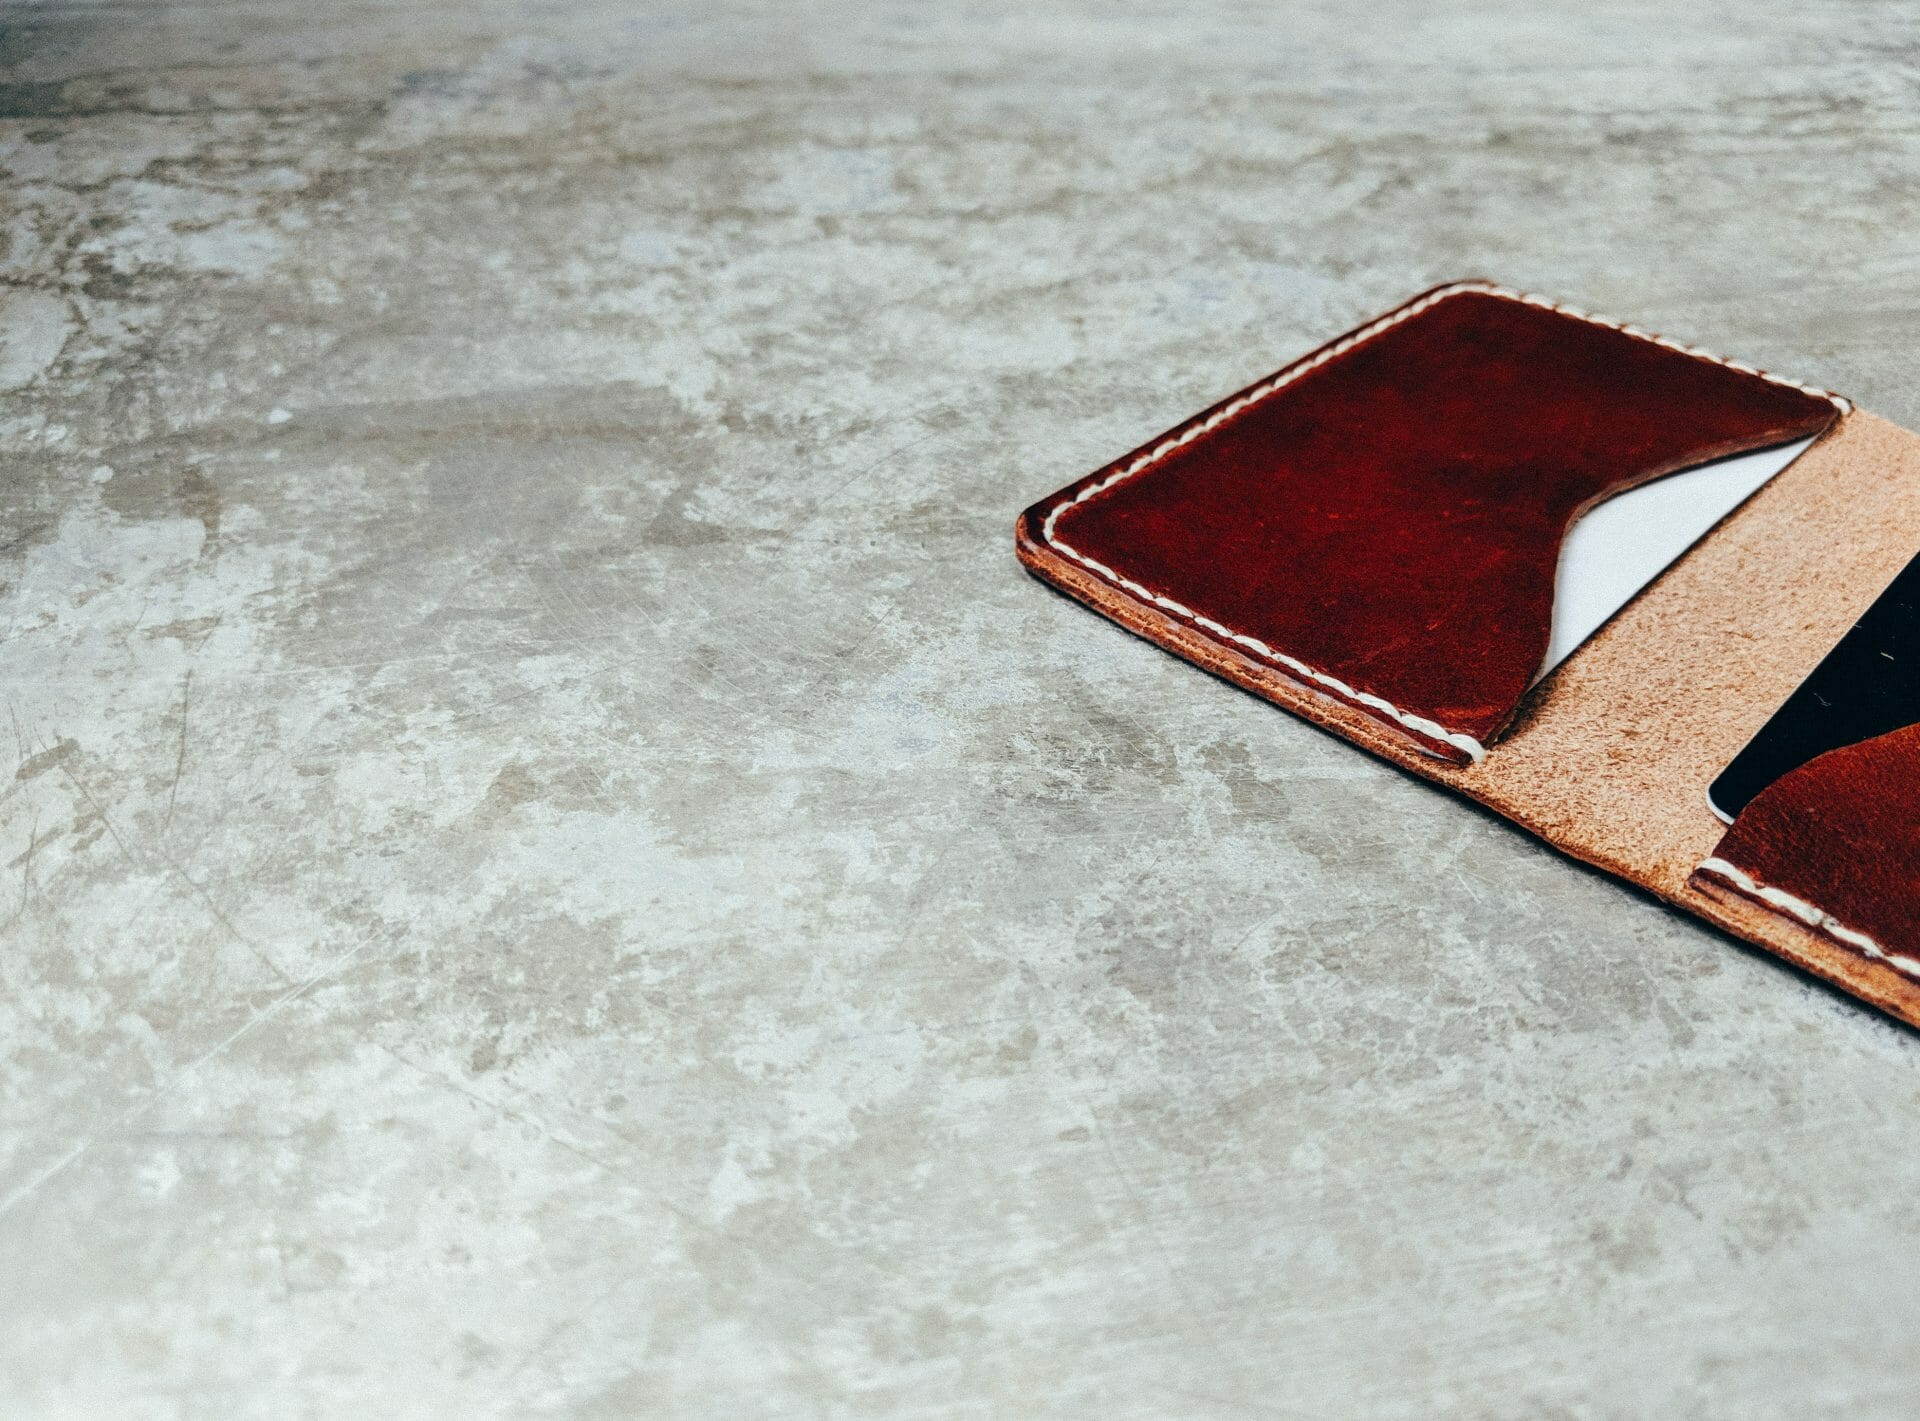 Picture of wallet on table for Real Wealth Show Podcast Episode #702